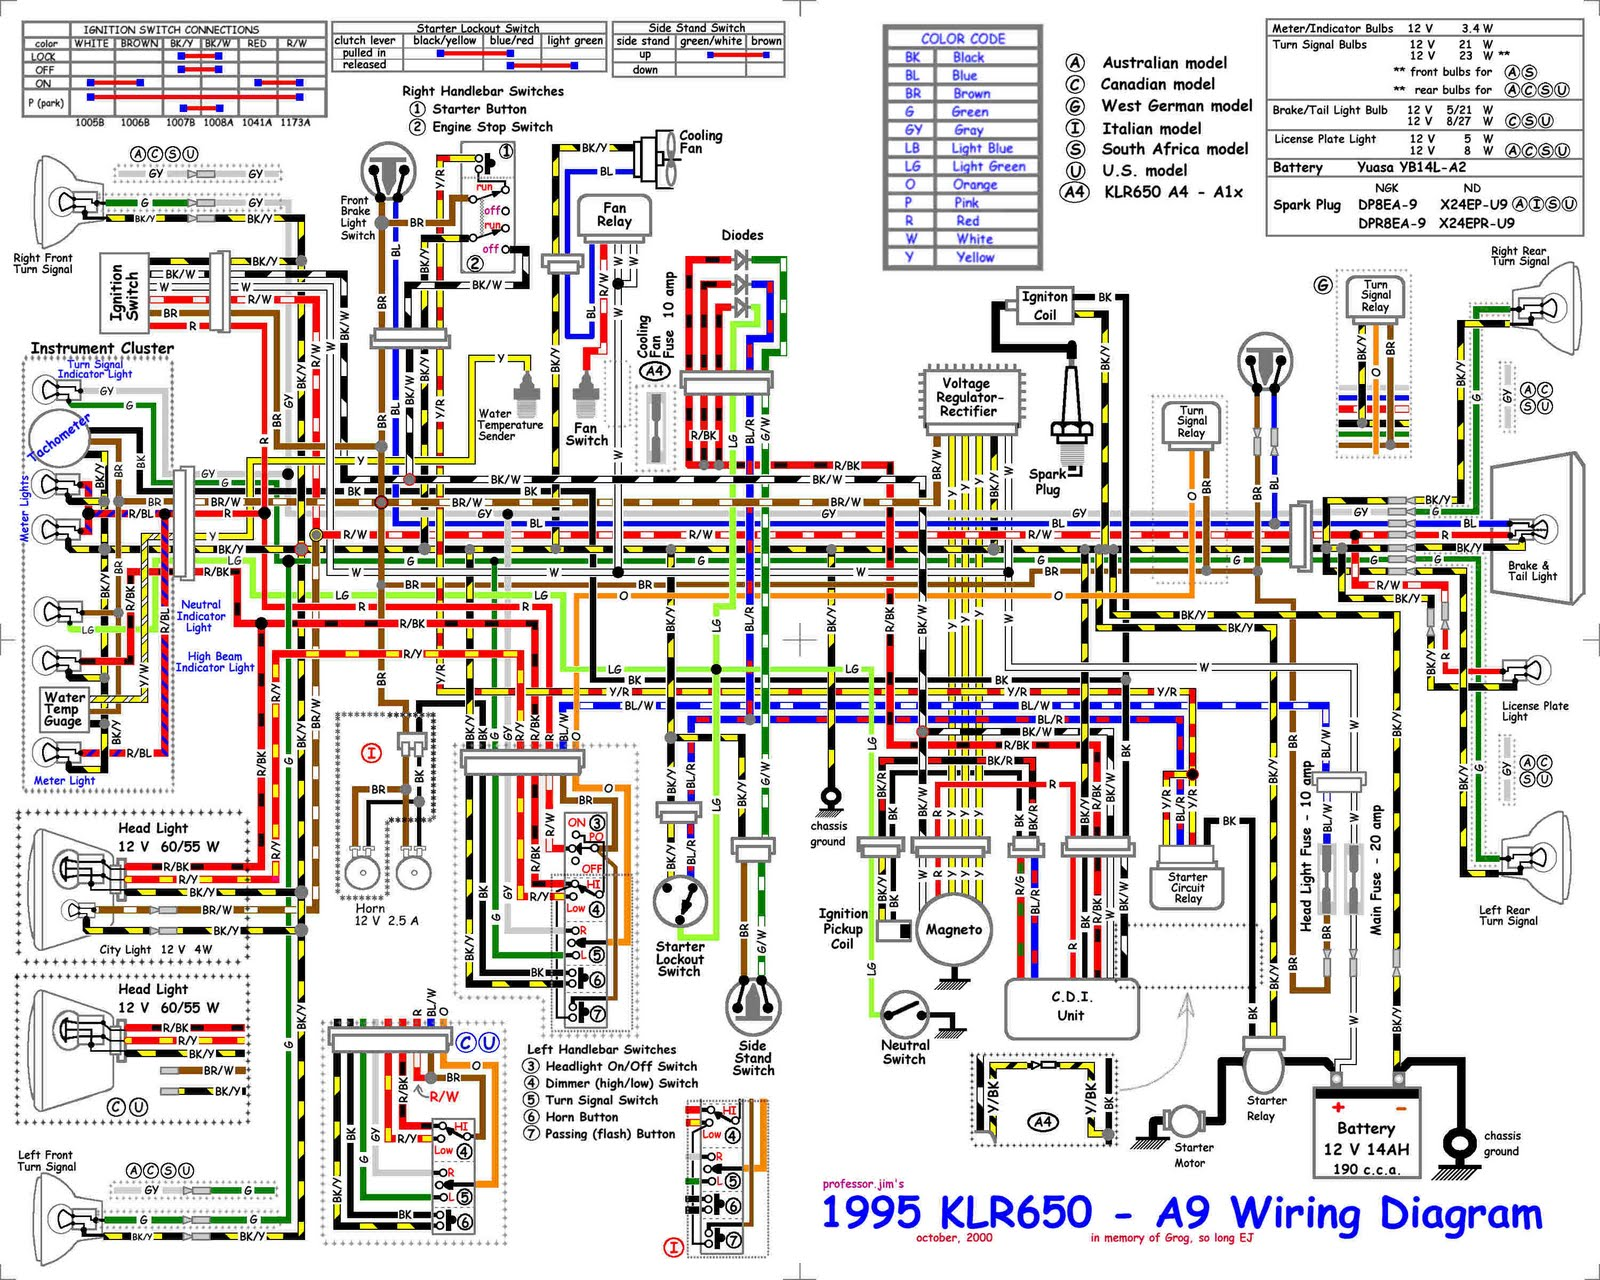 1974 monte carlo wiring diagram auto wiring diagrams premium automotive electrical wiring diagrams free vehicle wiring diagrams at creativeand.co